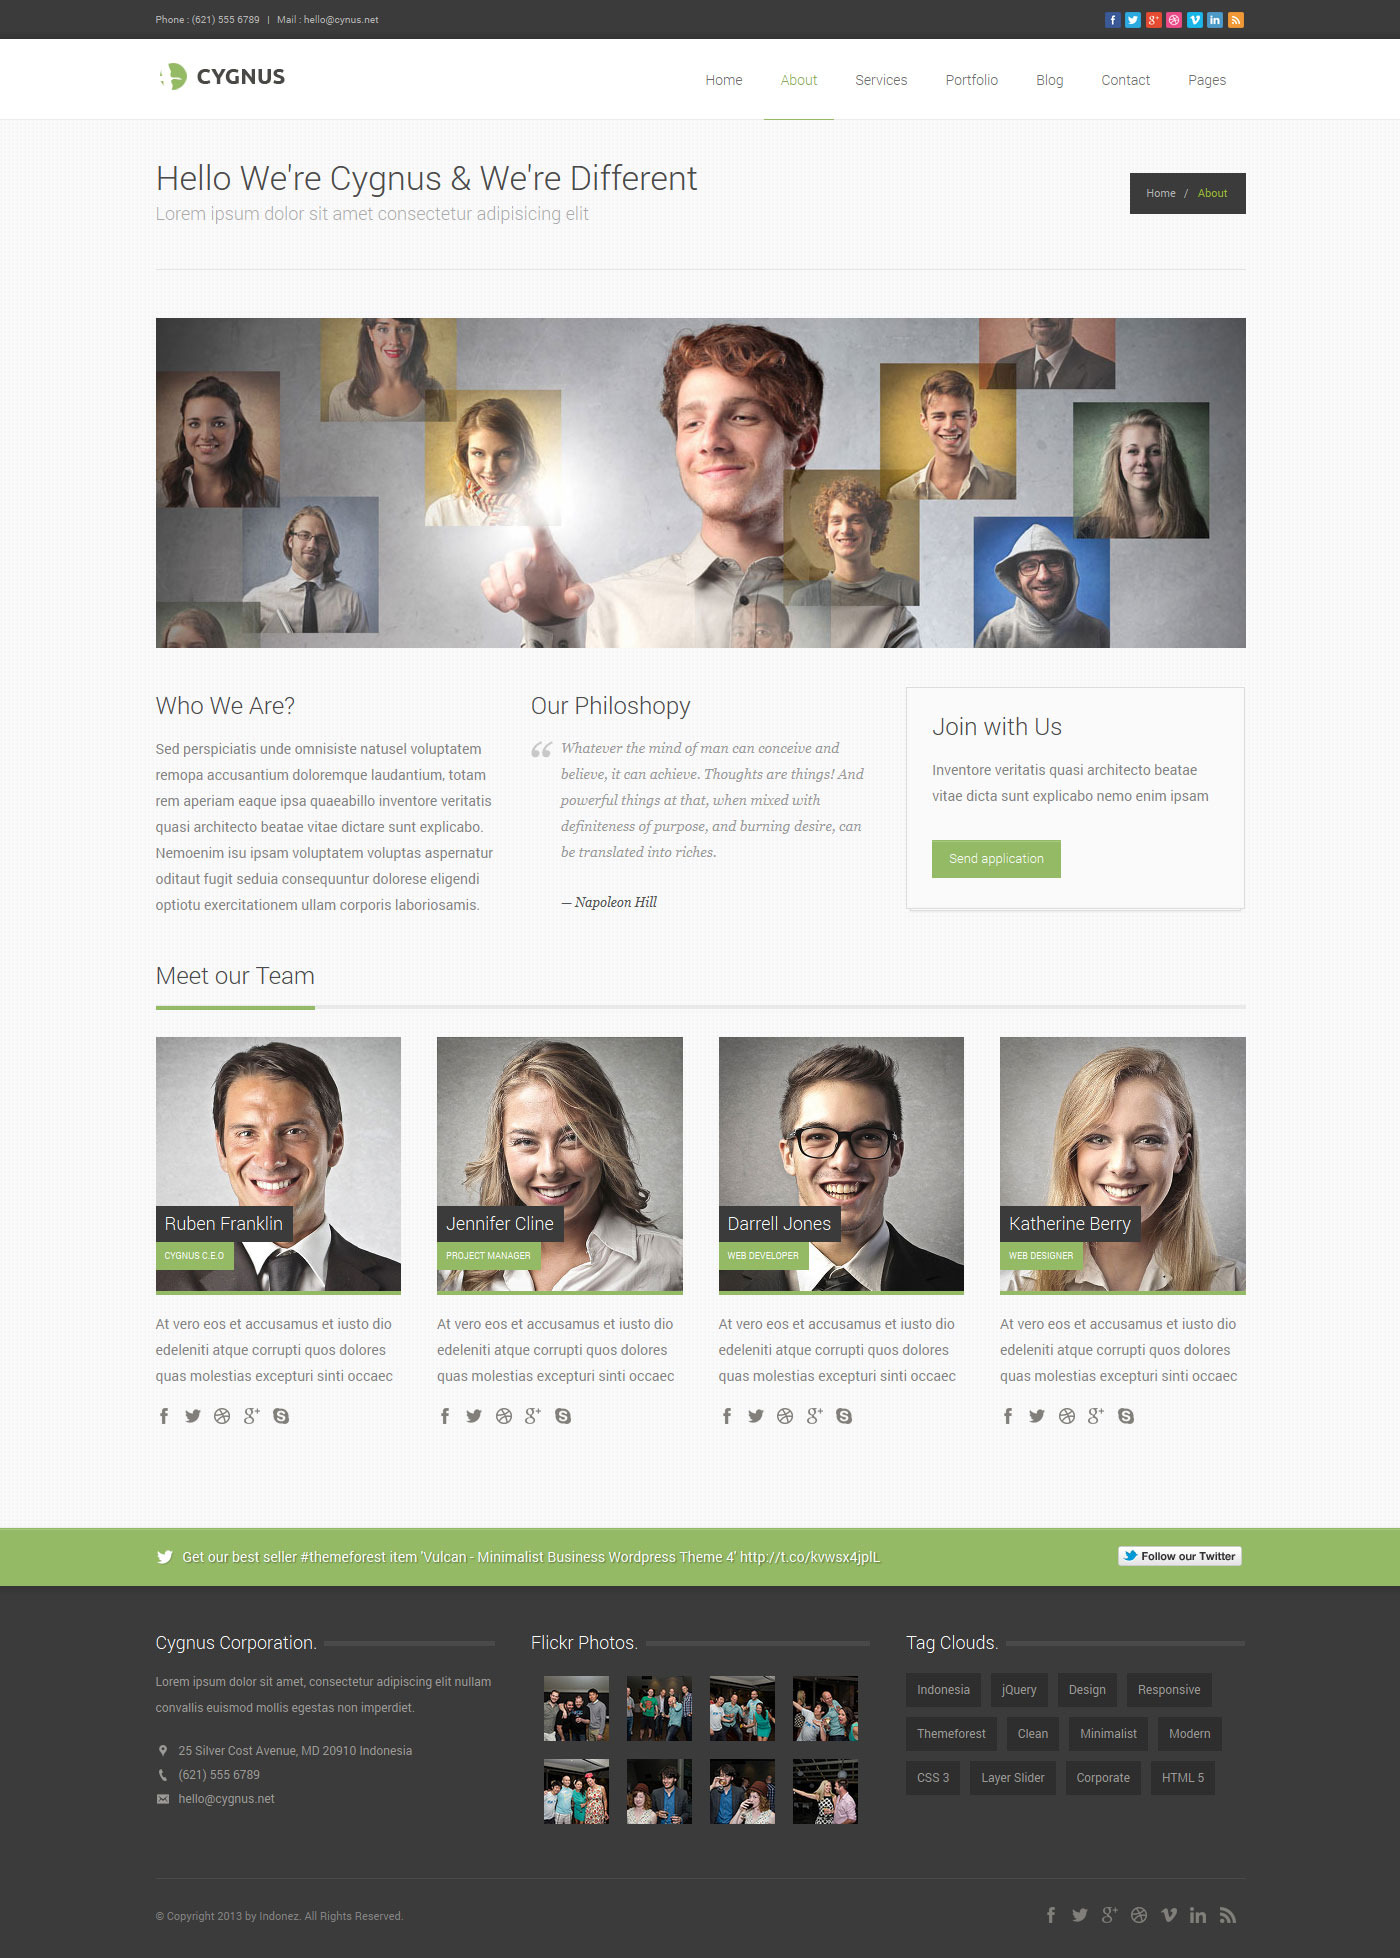 Cygnus - Minimalist Business Wordpress Theme 8